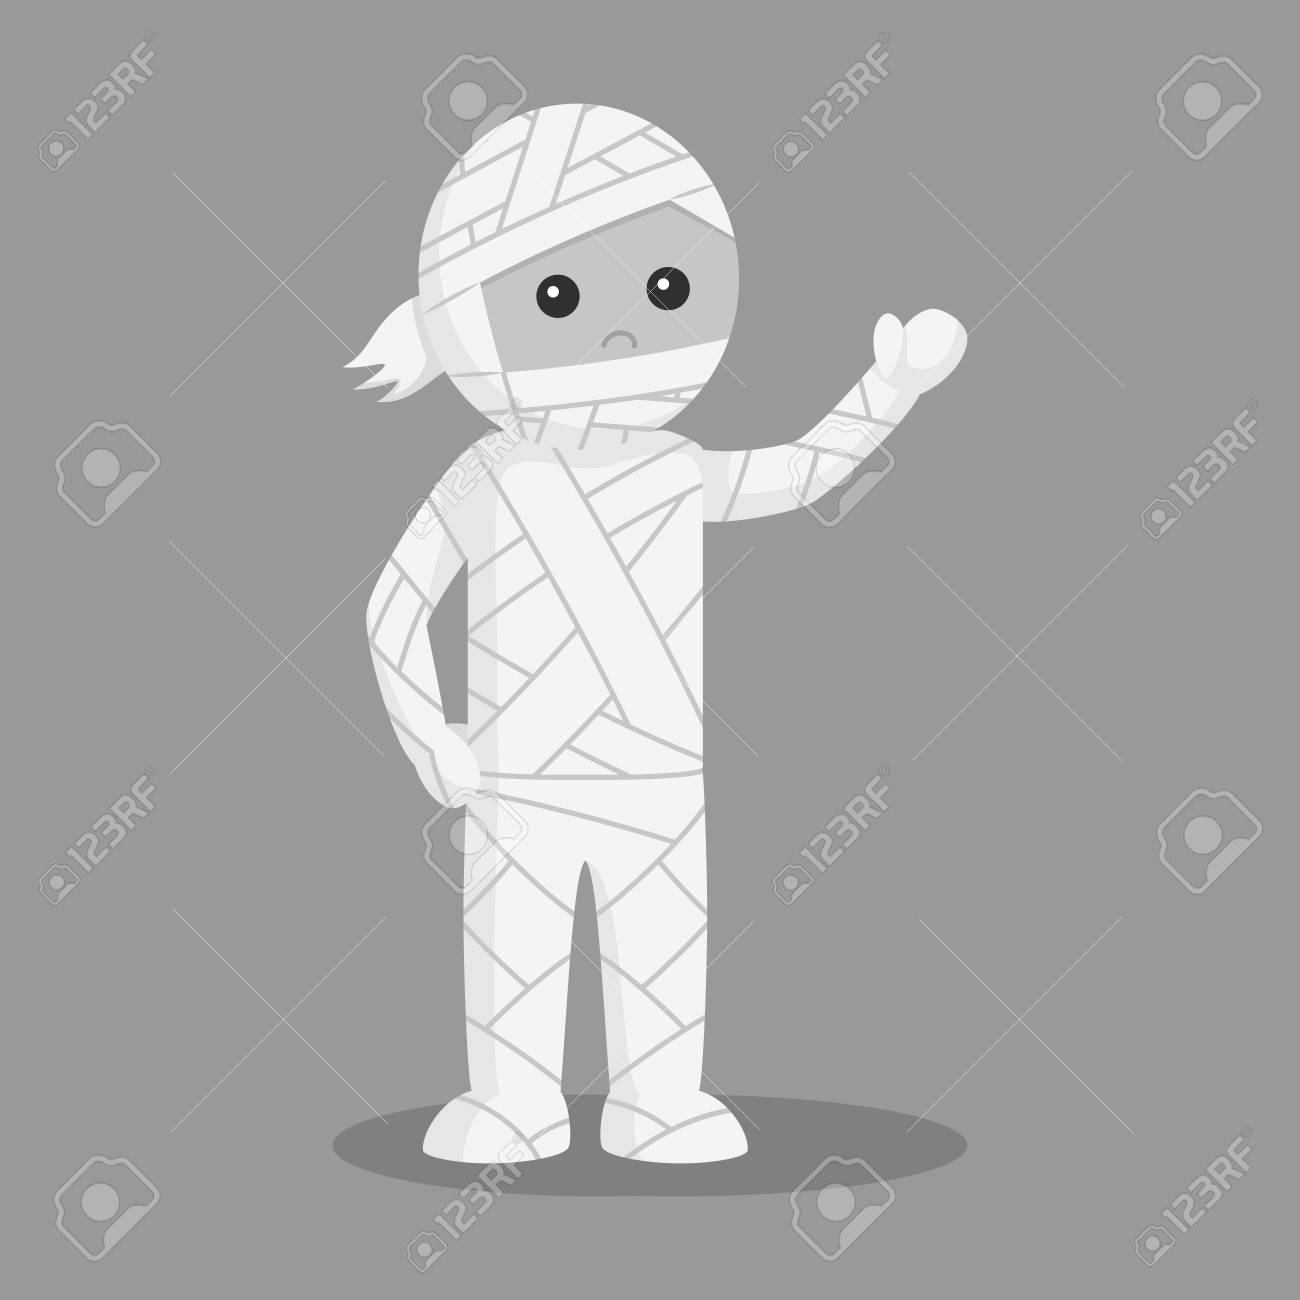 Man In Mummy Costume Black And White Style Stock Photo Picture And Royalty Free Image Image 95066456